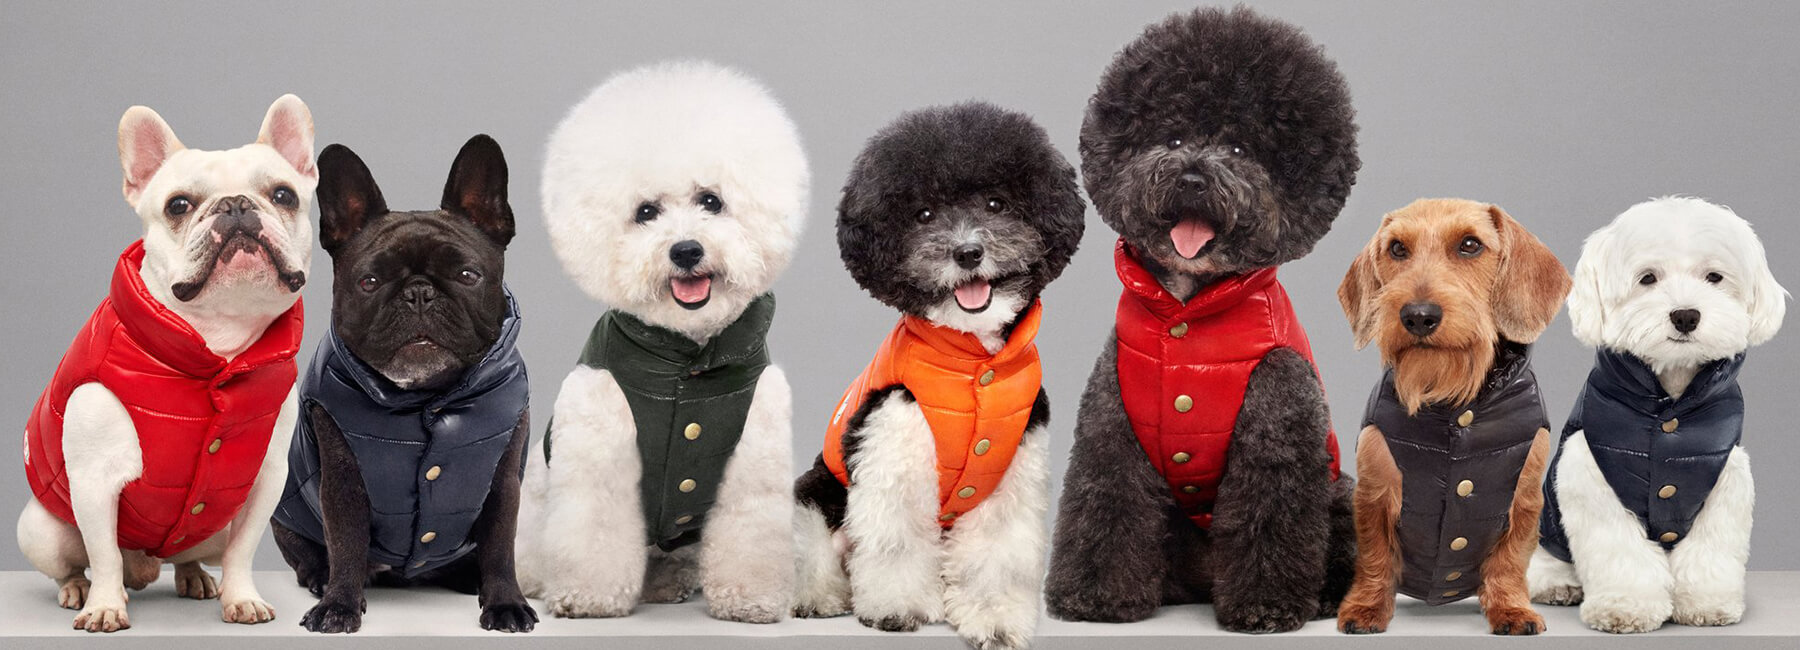 Luxury Puffer Jackets for Dogs by Moncler 9 (1)